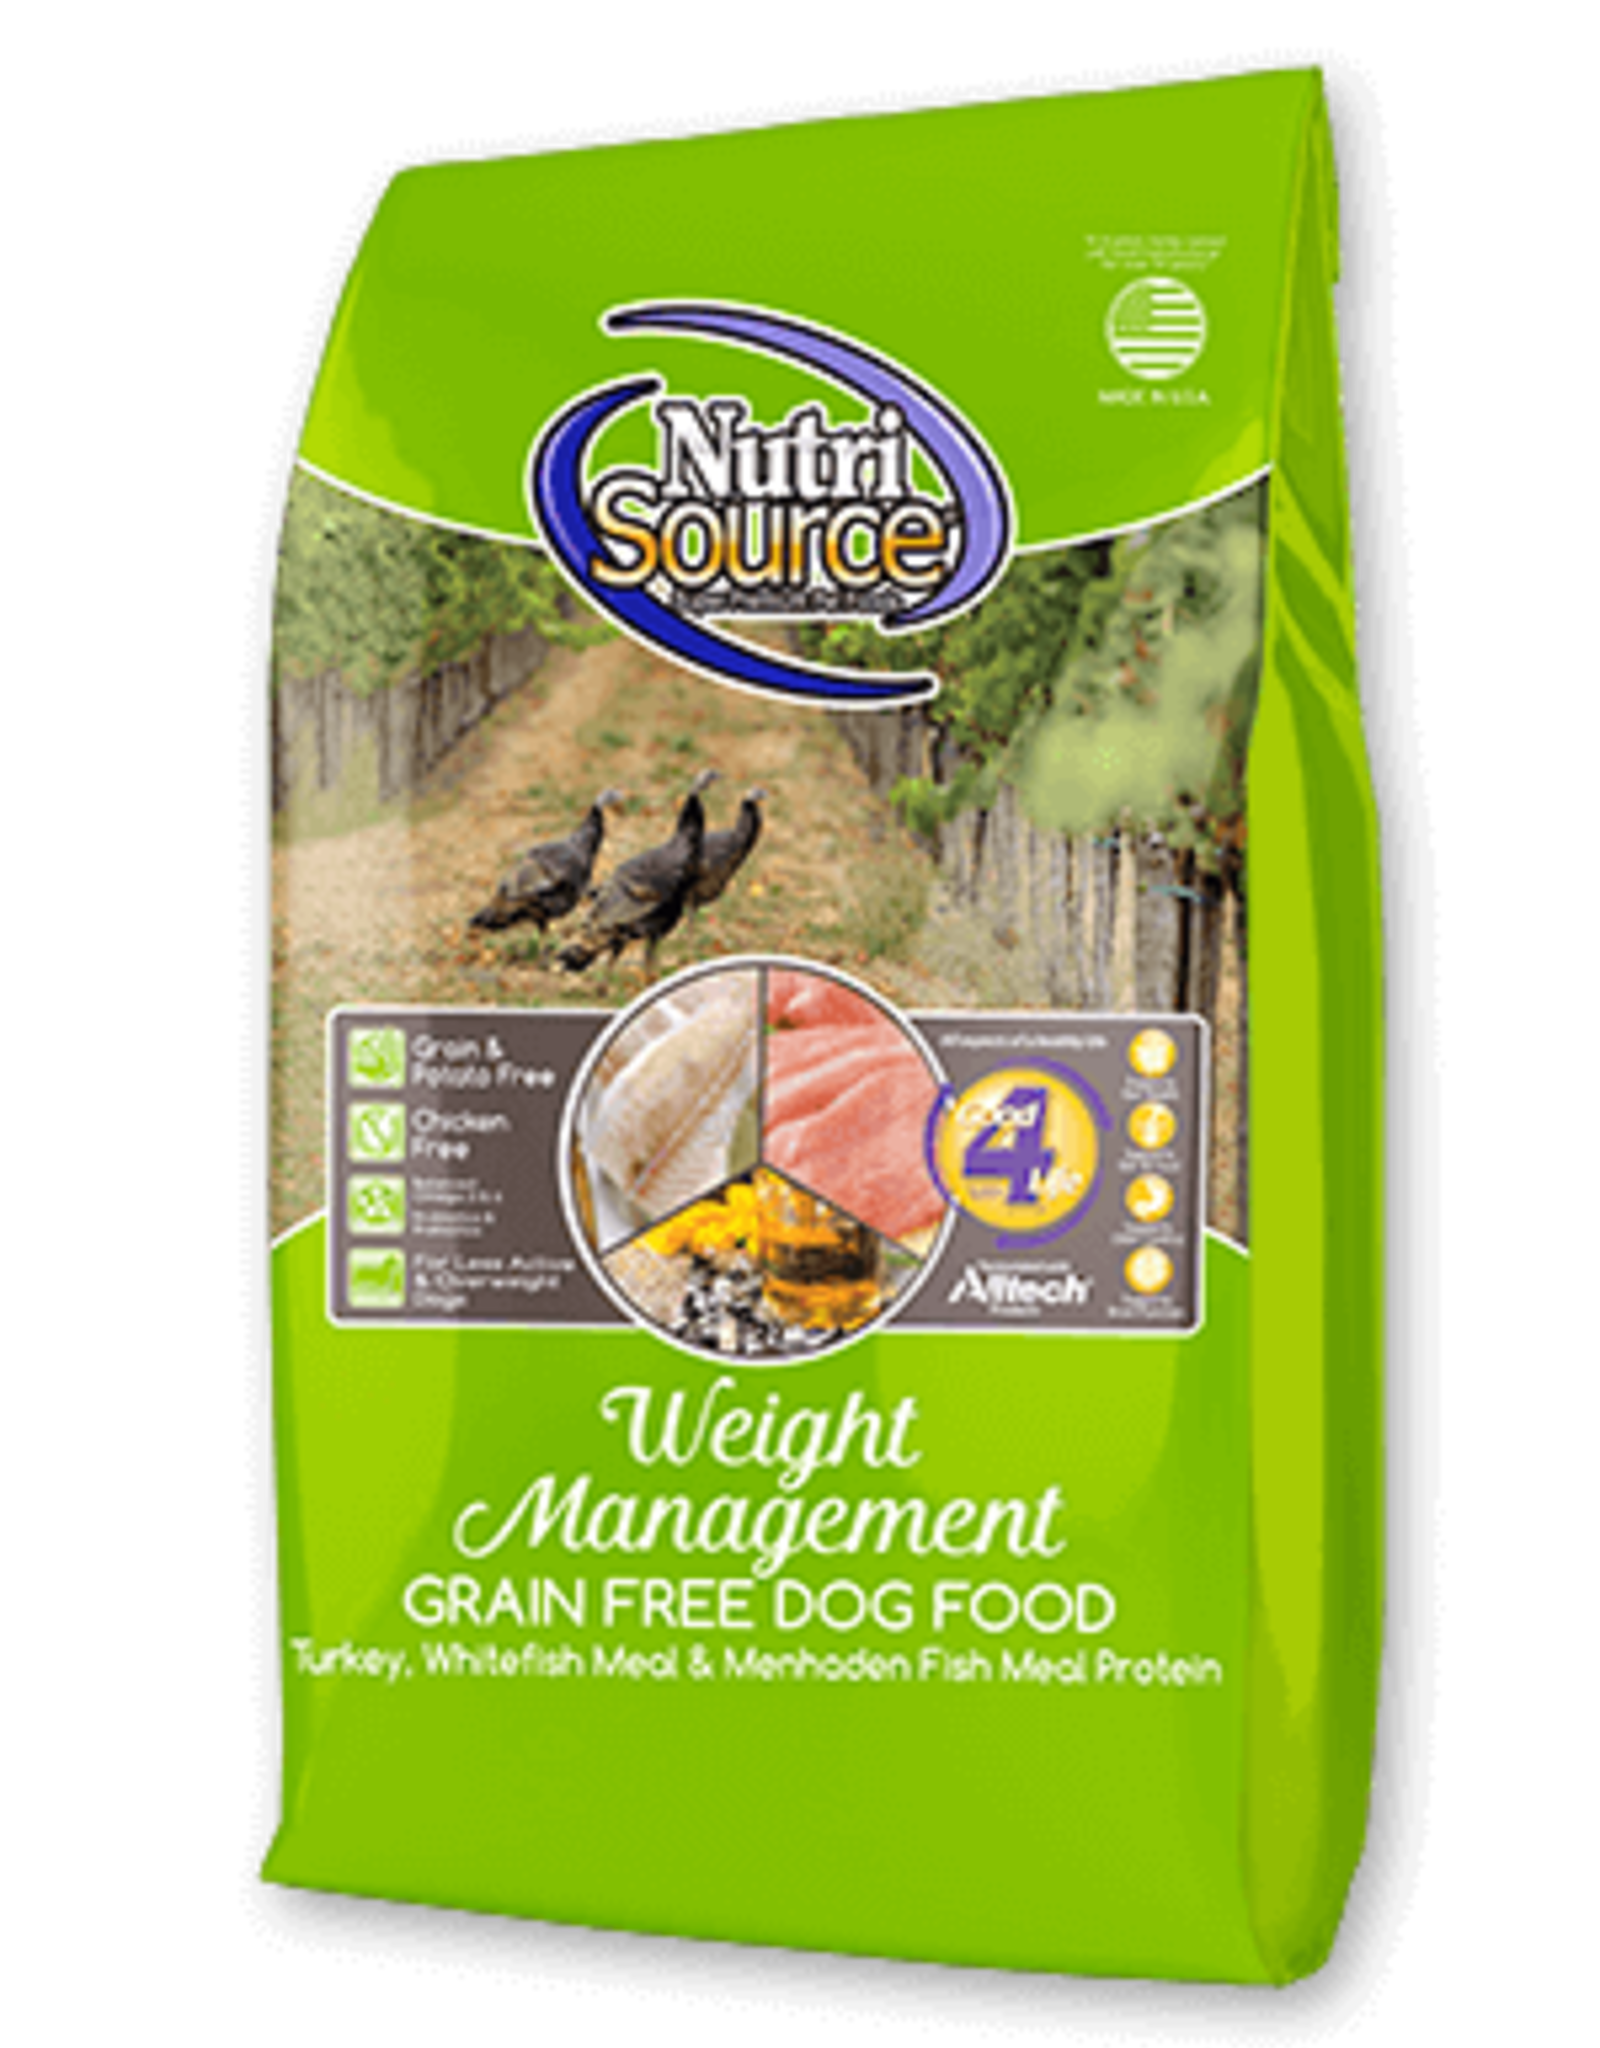 Nutrisource GF Dog Food Weight Management